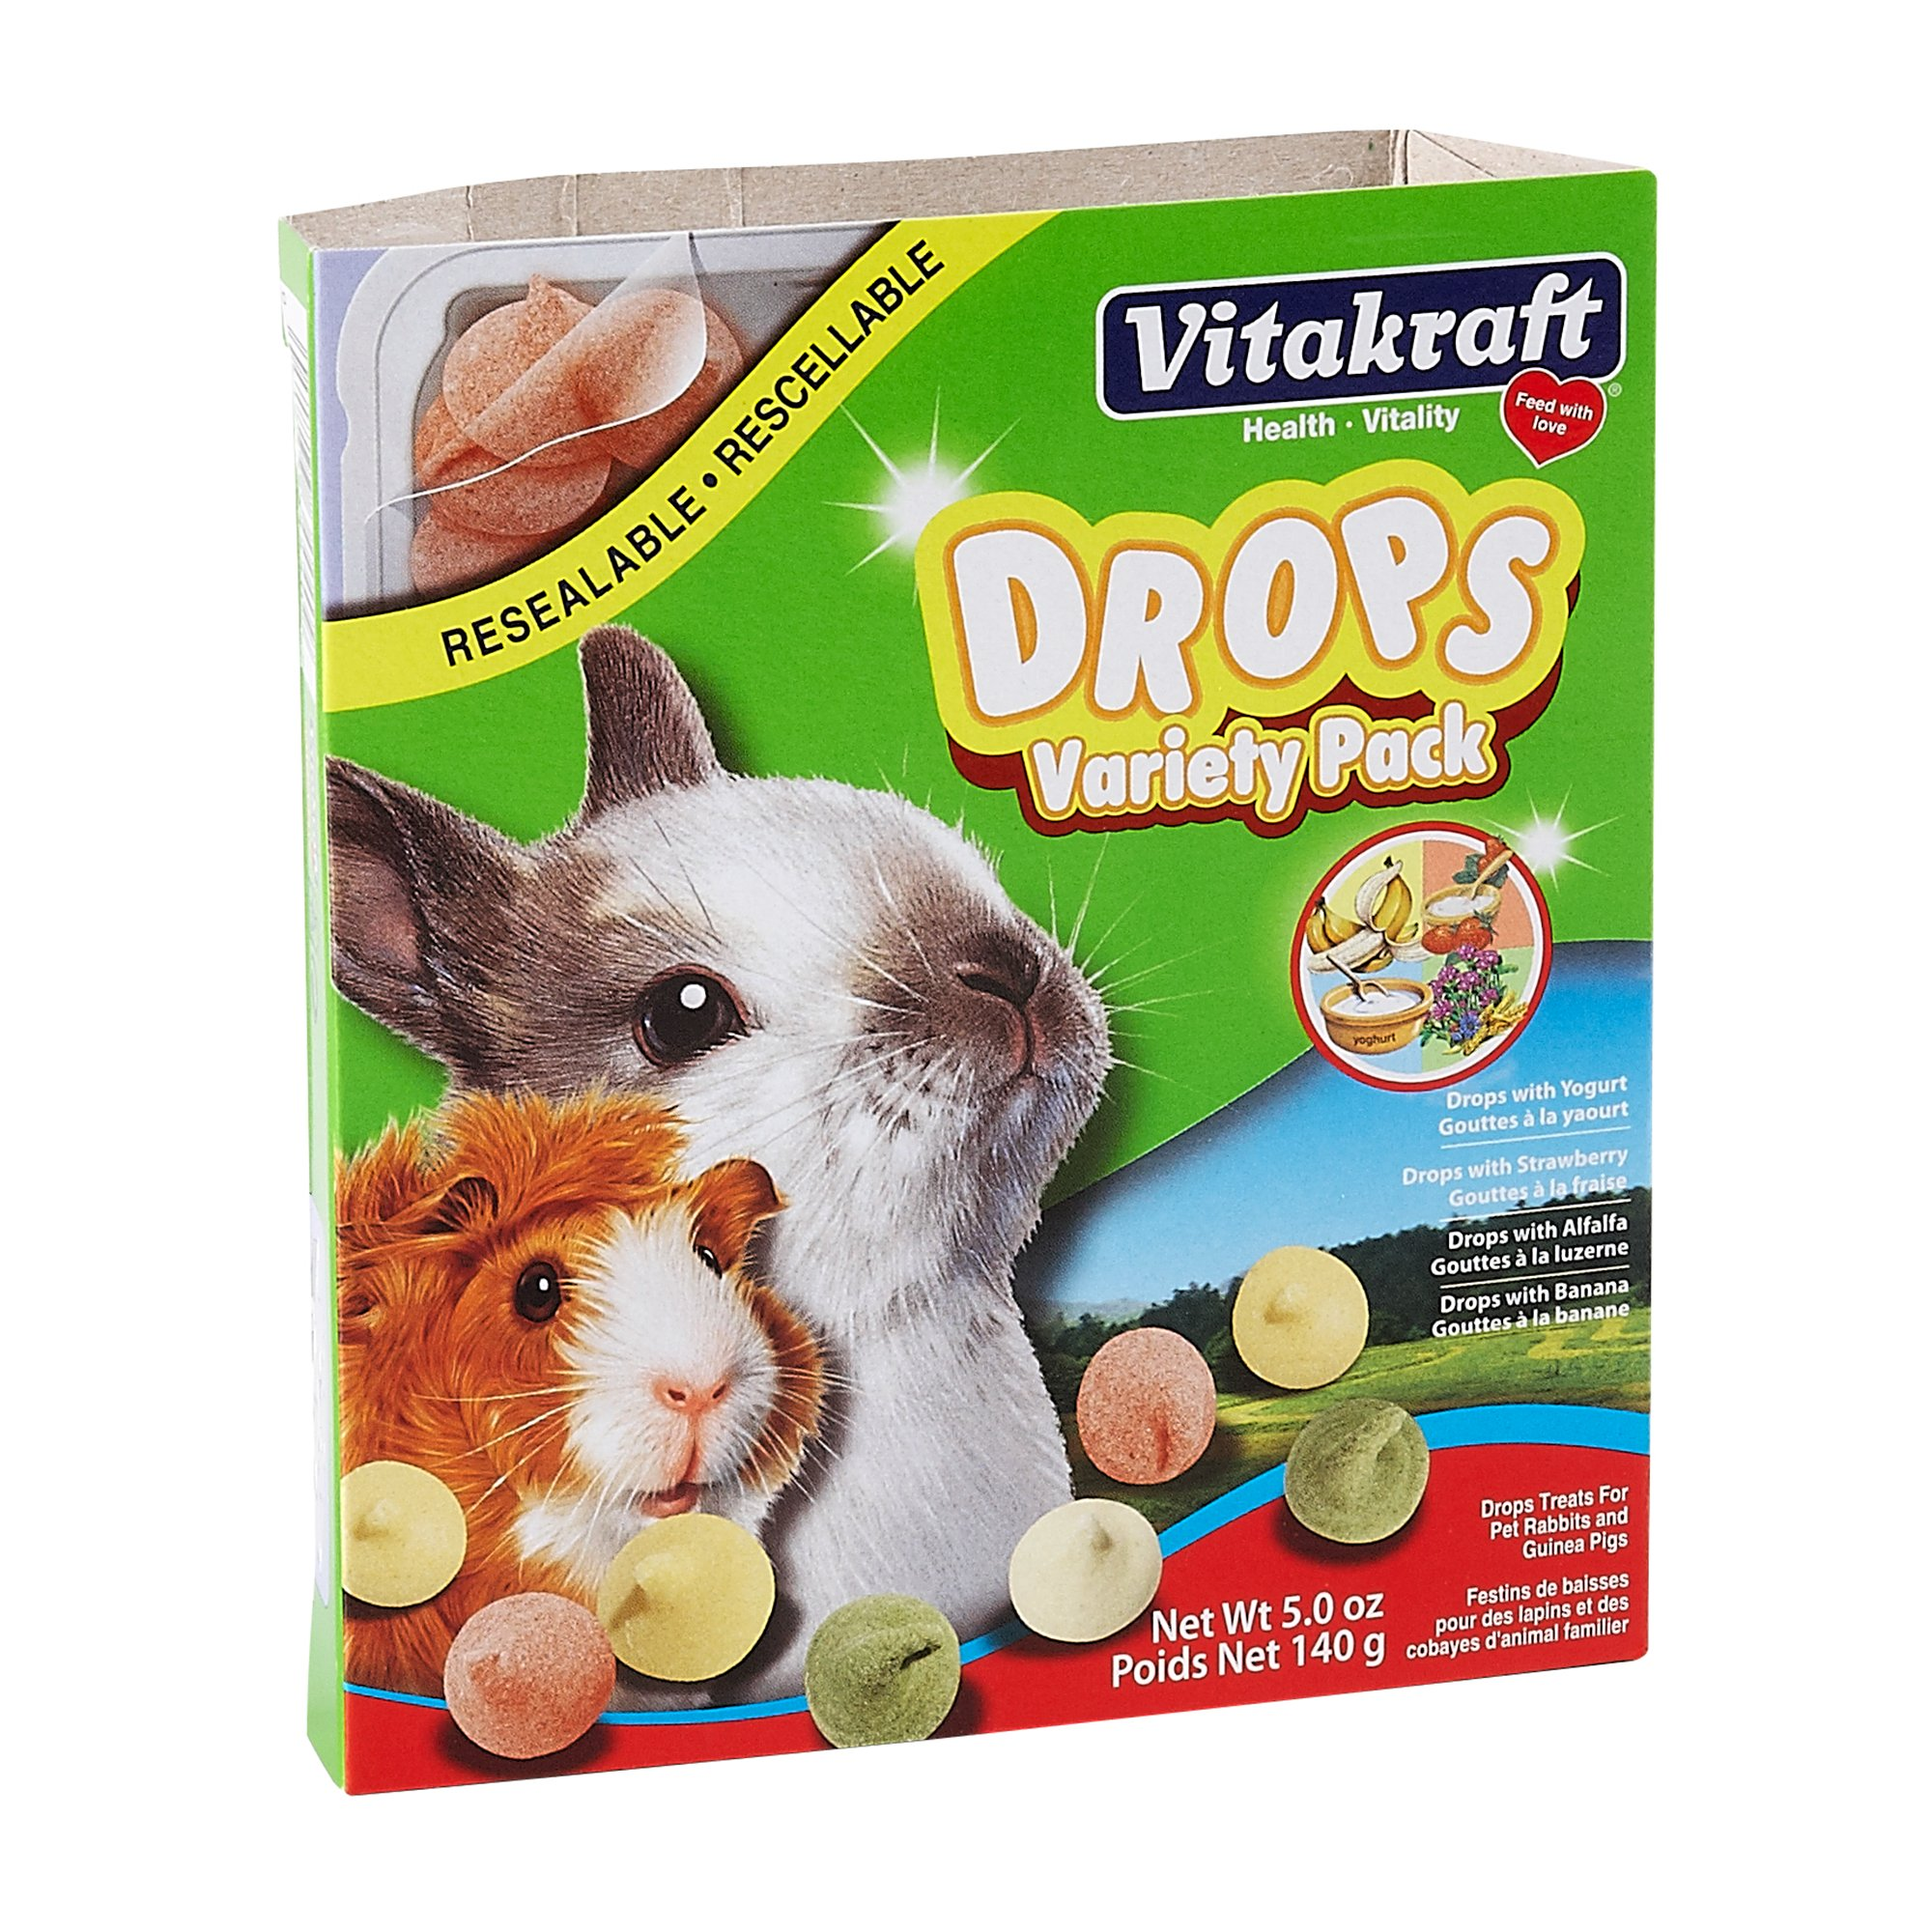 Vitakraft Drops Variety Pack for Rabbits & Guinea Pigs